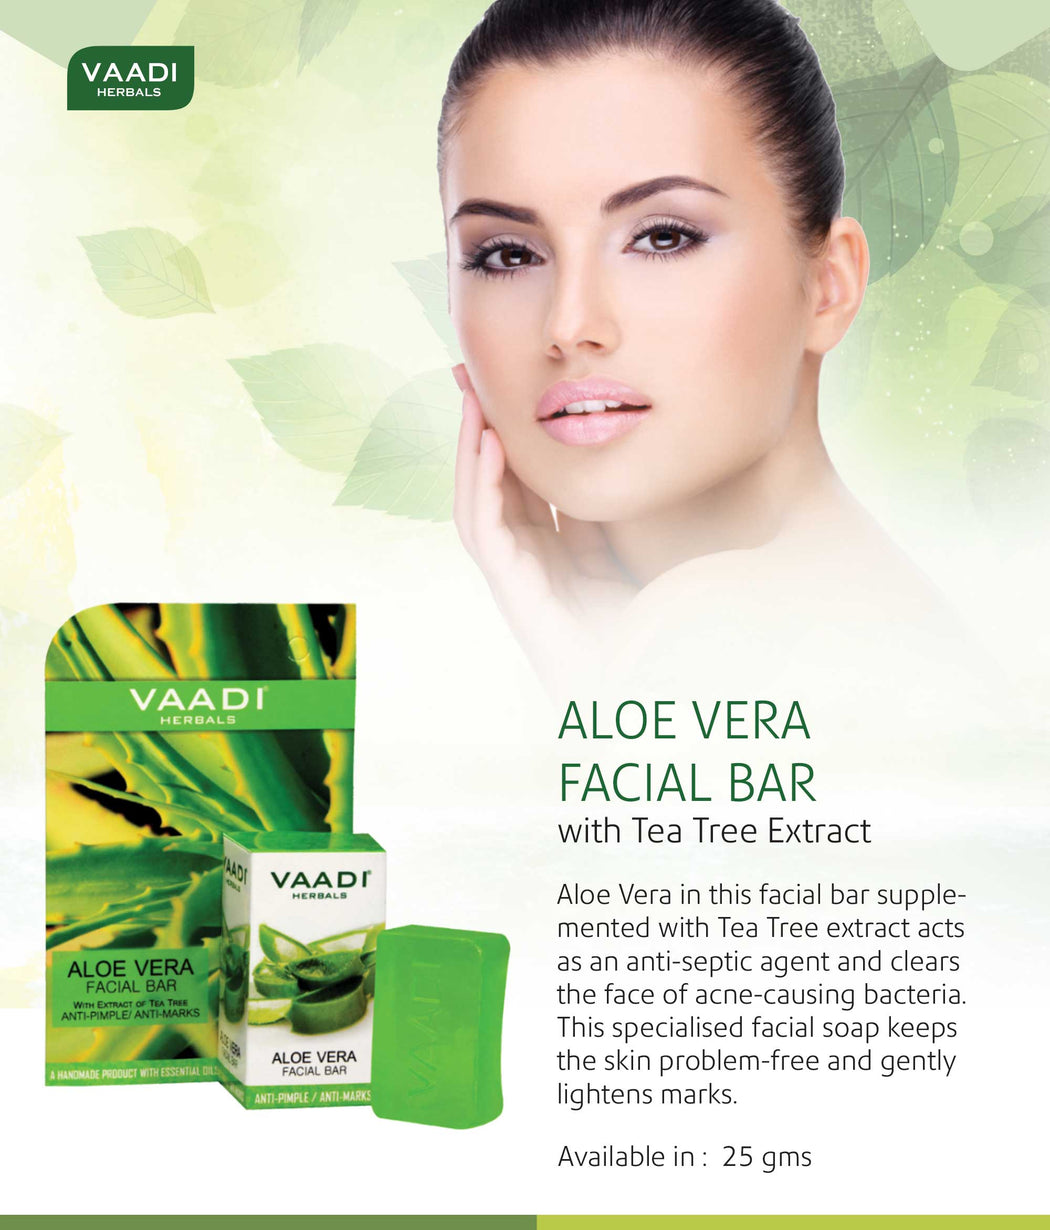 Organic Aloe Vera Facial Bar with Tea Tree and Honey - Reduces Acne - Keeps Skin Infection Free (6 x 25 gms/0.9 oz)